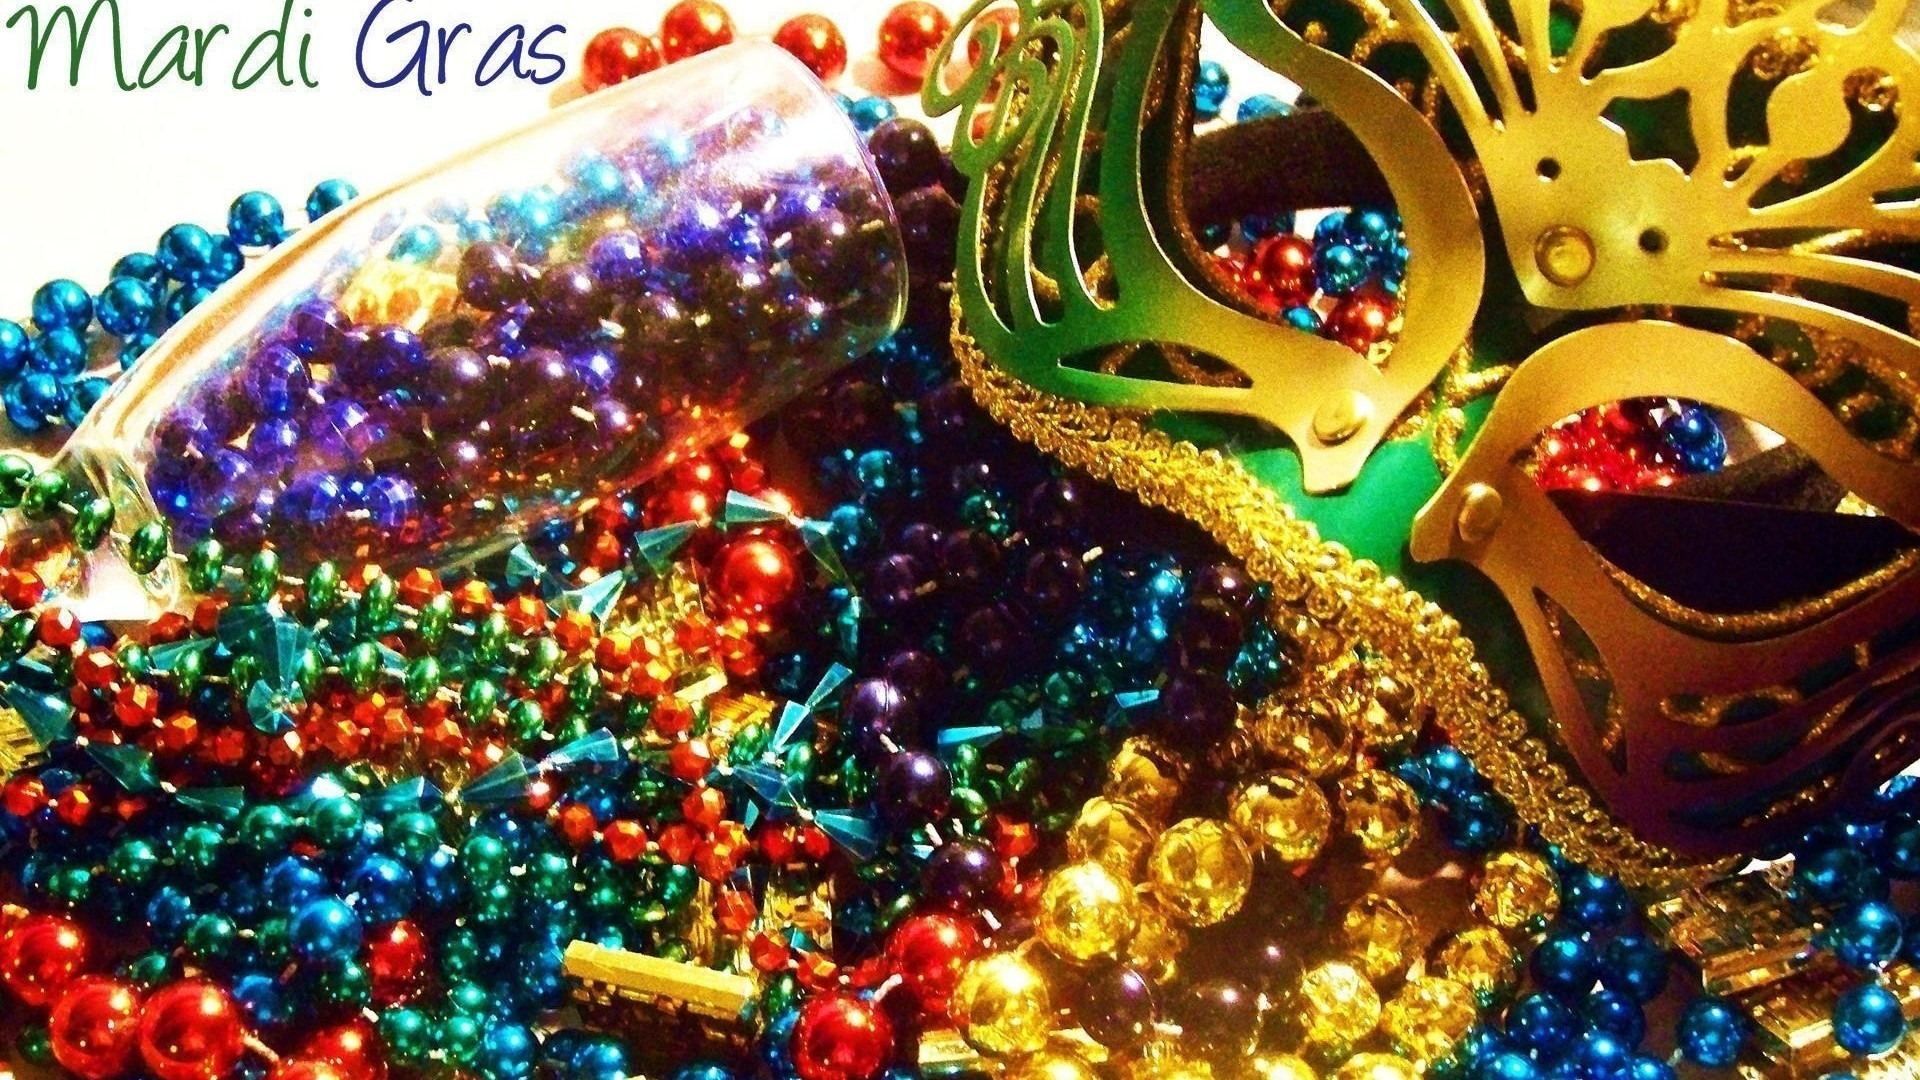 1920x1080 Mardi Gras Desktop Wallpapers (64+ background pictures)